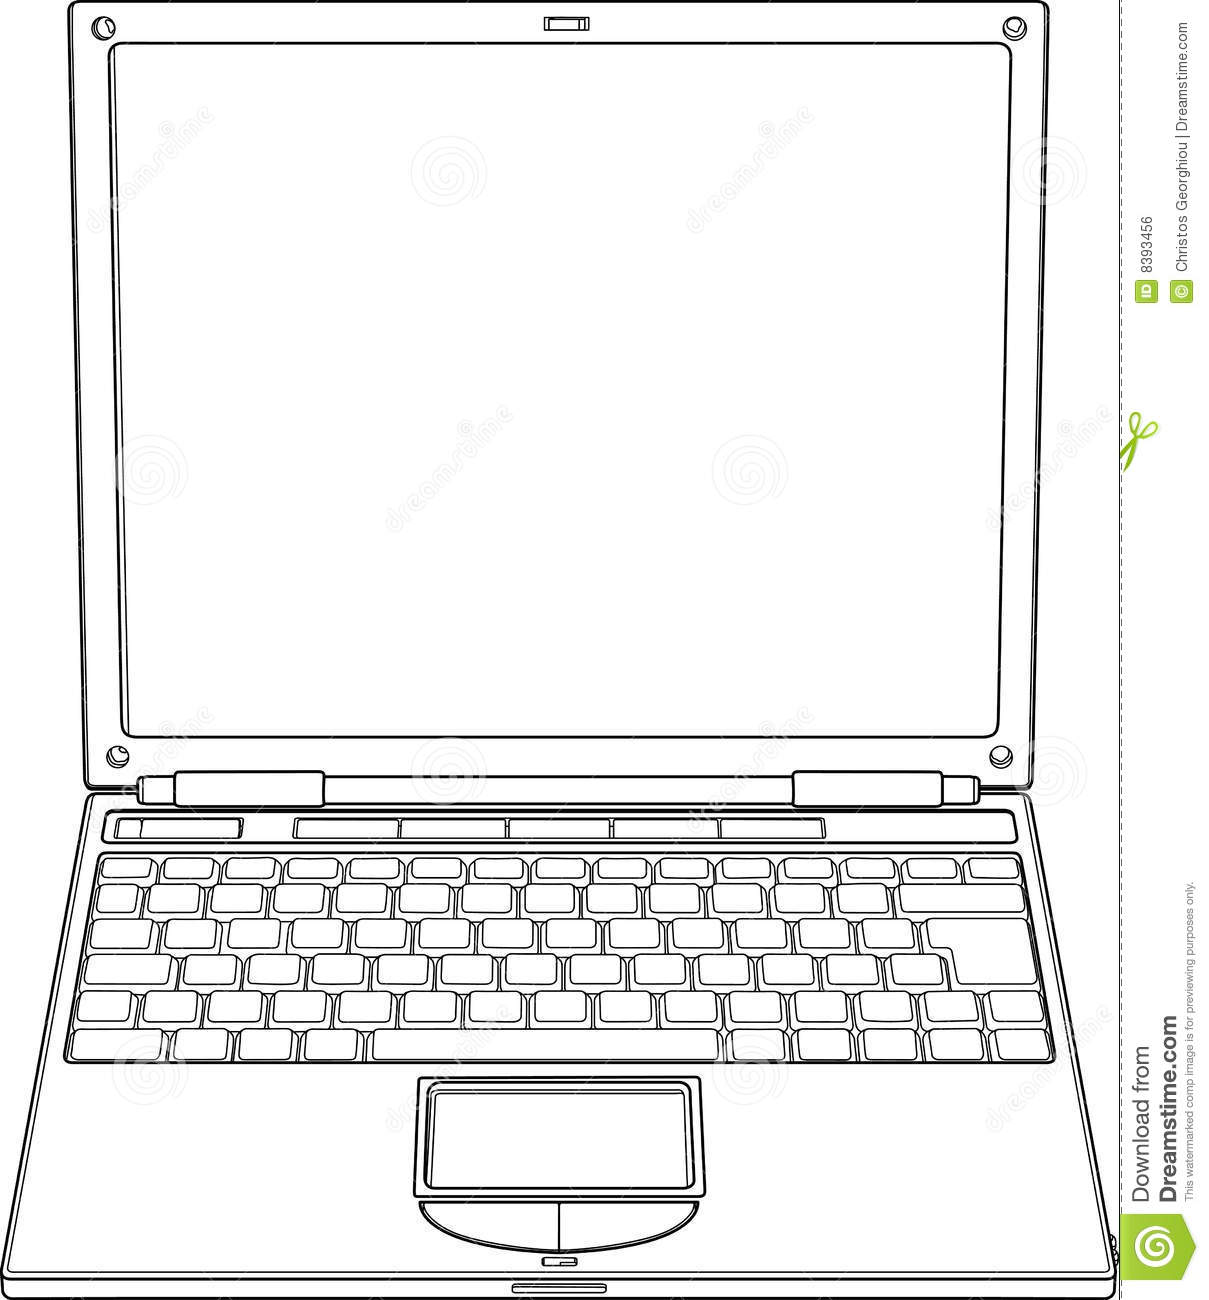 Laptop Outline Vector Illustration Royalty Free Stock Image - Image ...